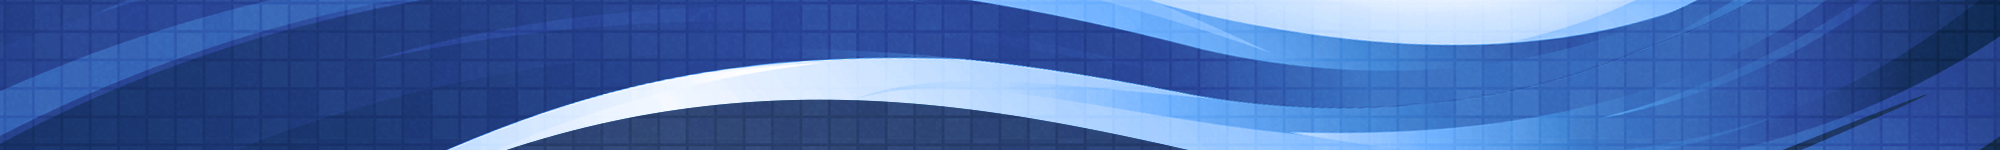 banner-1-large.png